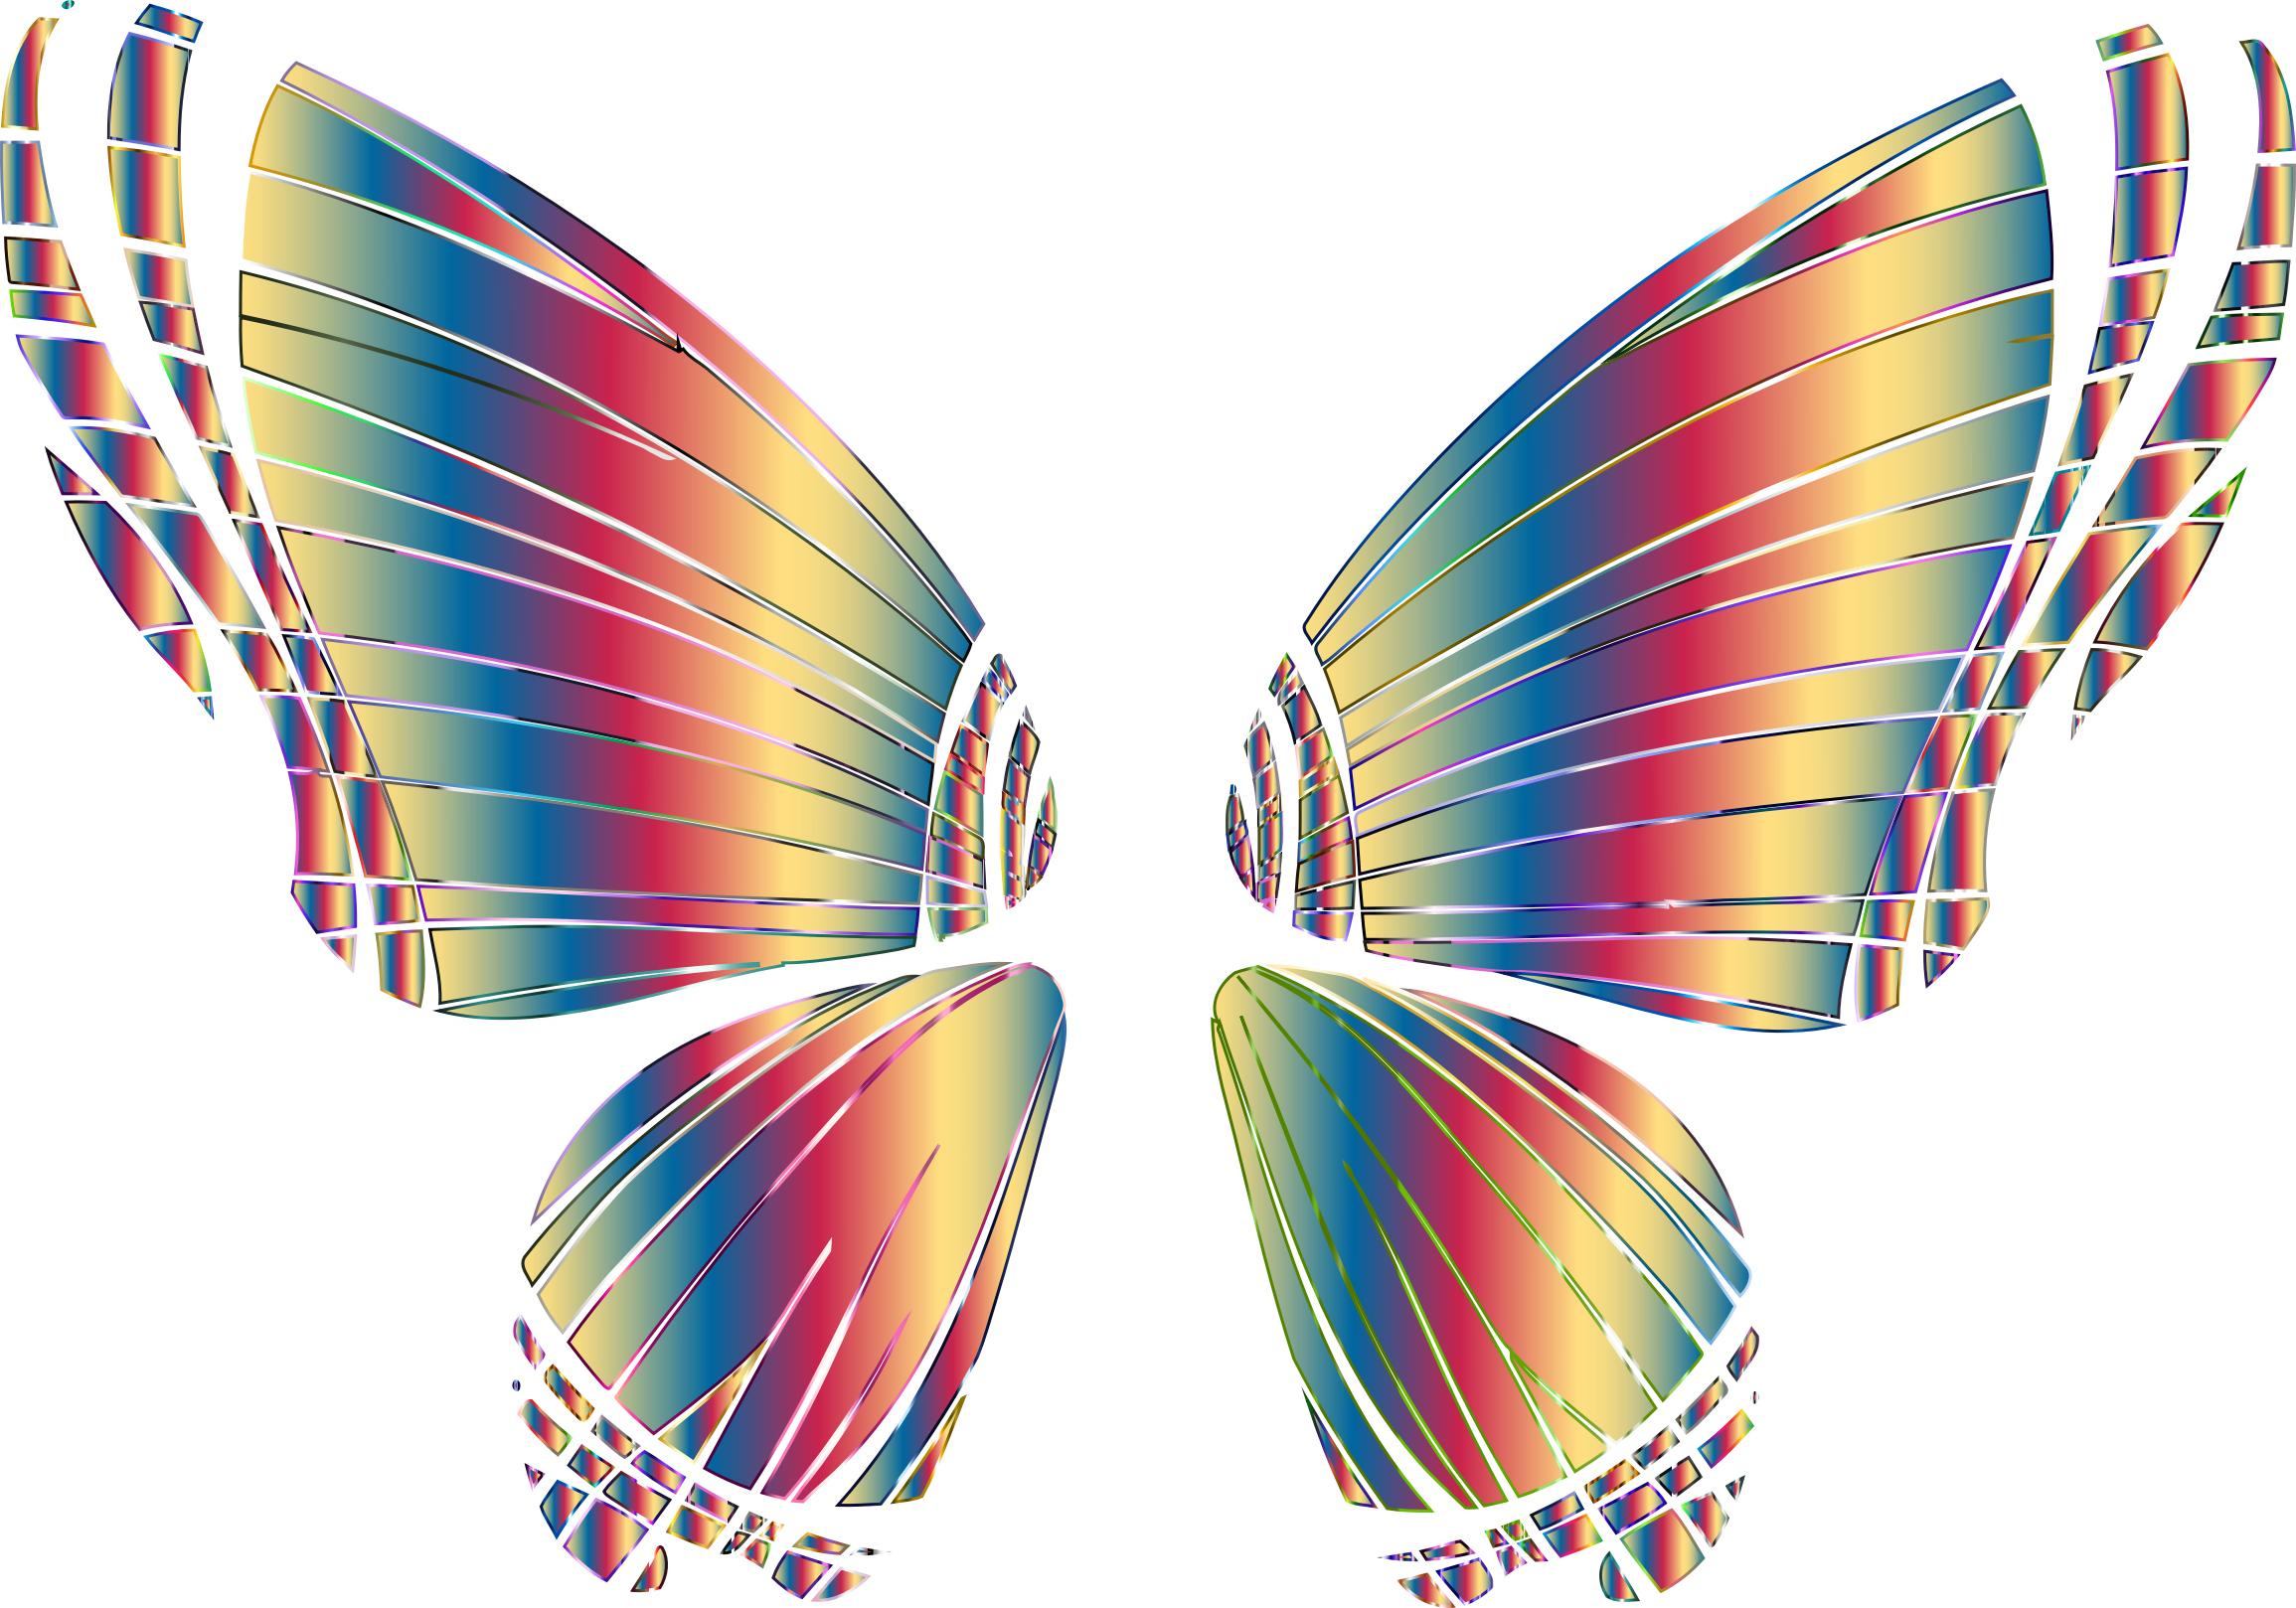 RGB Butterfly Silhouette 10 16 No Background by GDJ